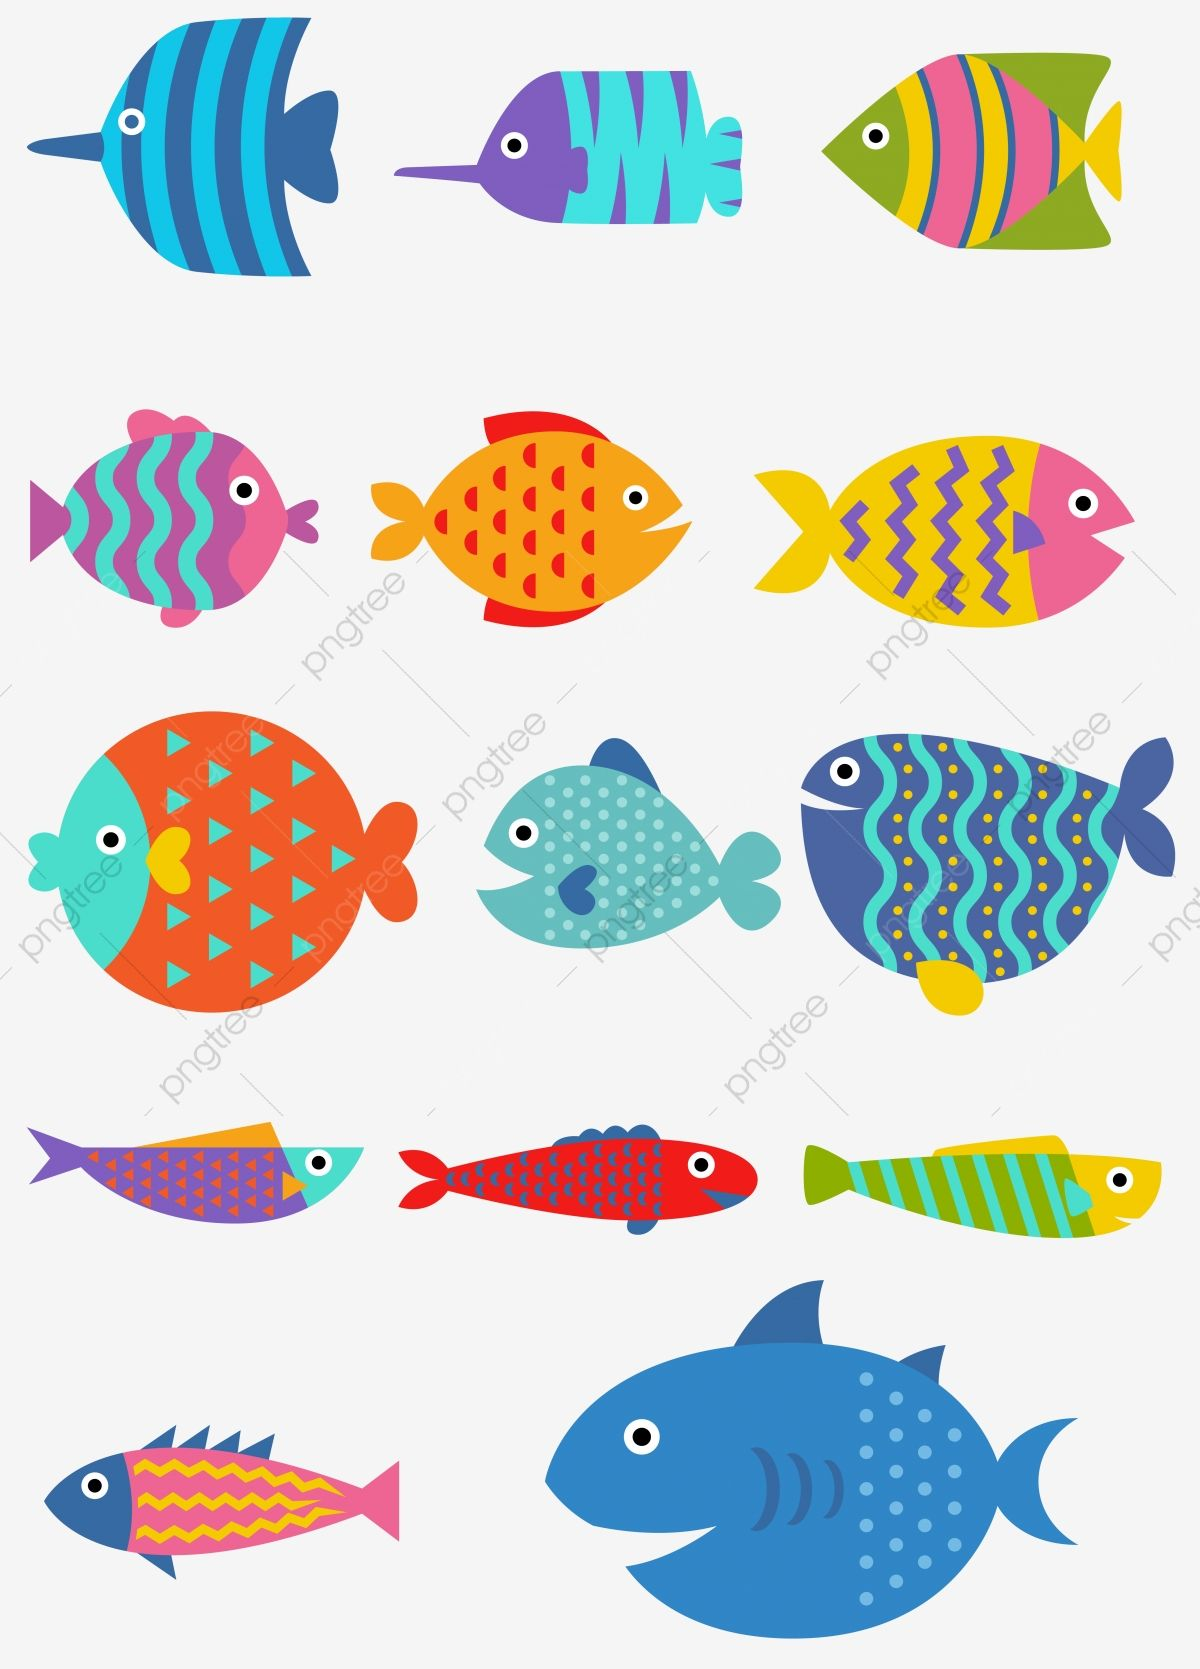 Cute Fish Ocean Water Animal Png And Vector With Transparent Background For Free Download Fish Illustration Cute Fish Fish Graphic